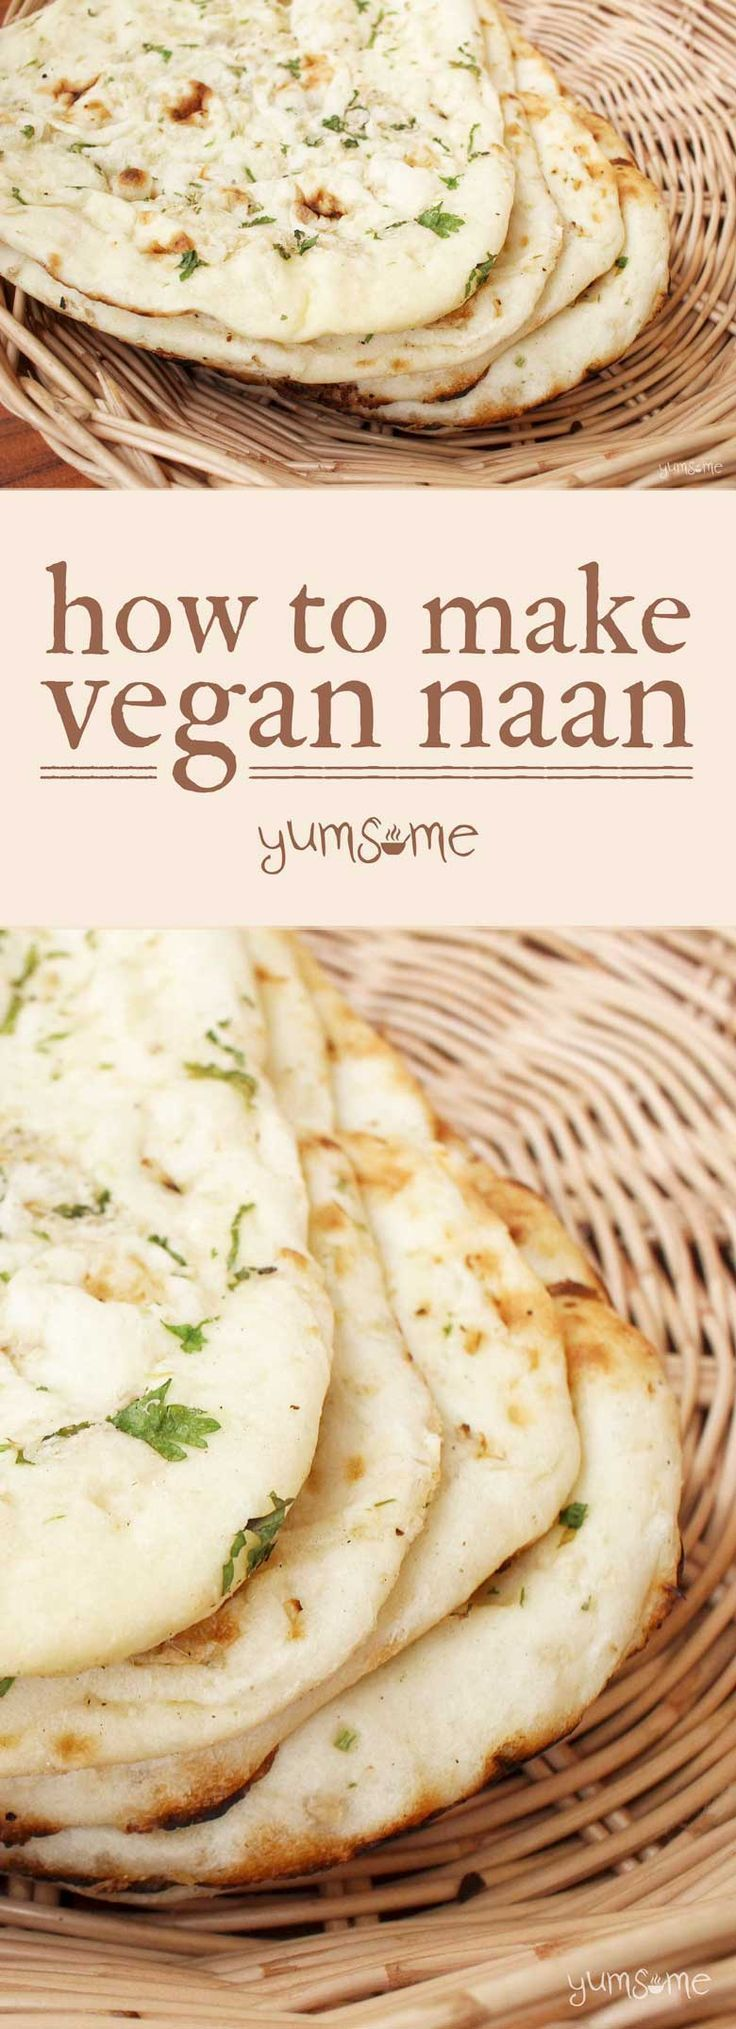 My naan is soft and pillowy, with a little bit of ... - #bit #indian #Naan #pillowy #soft #indianfood